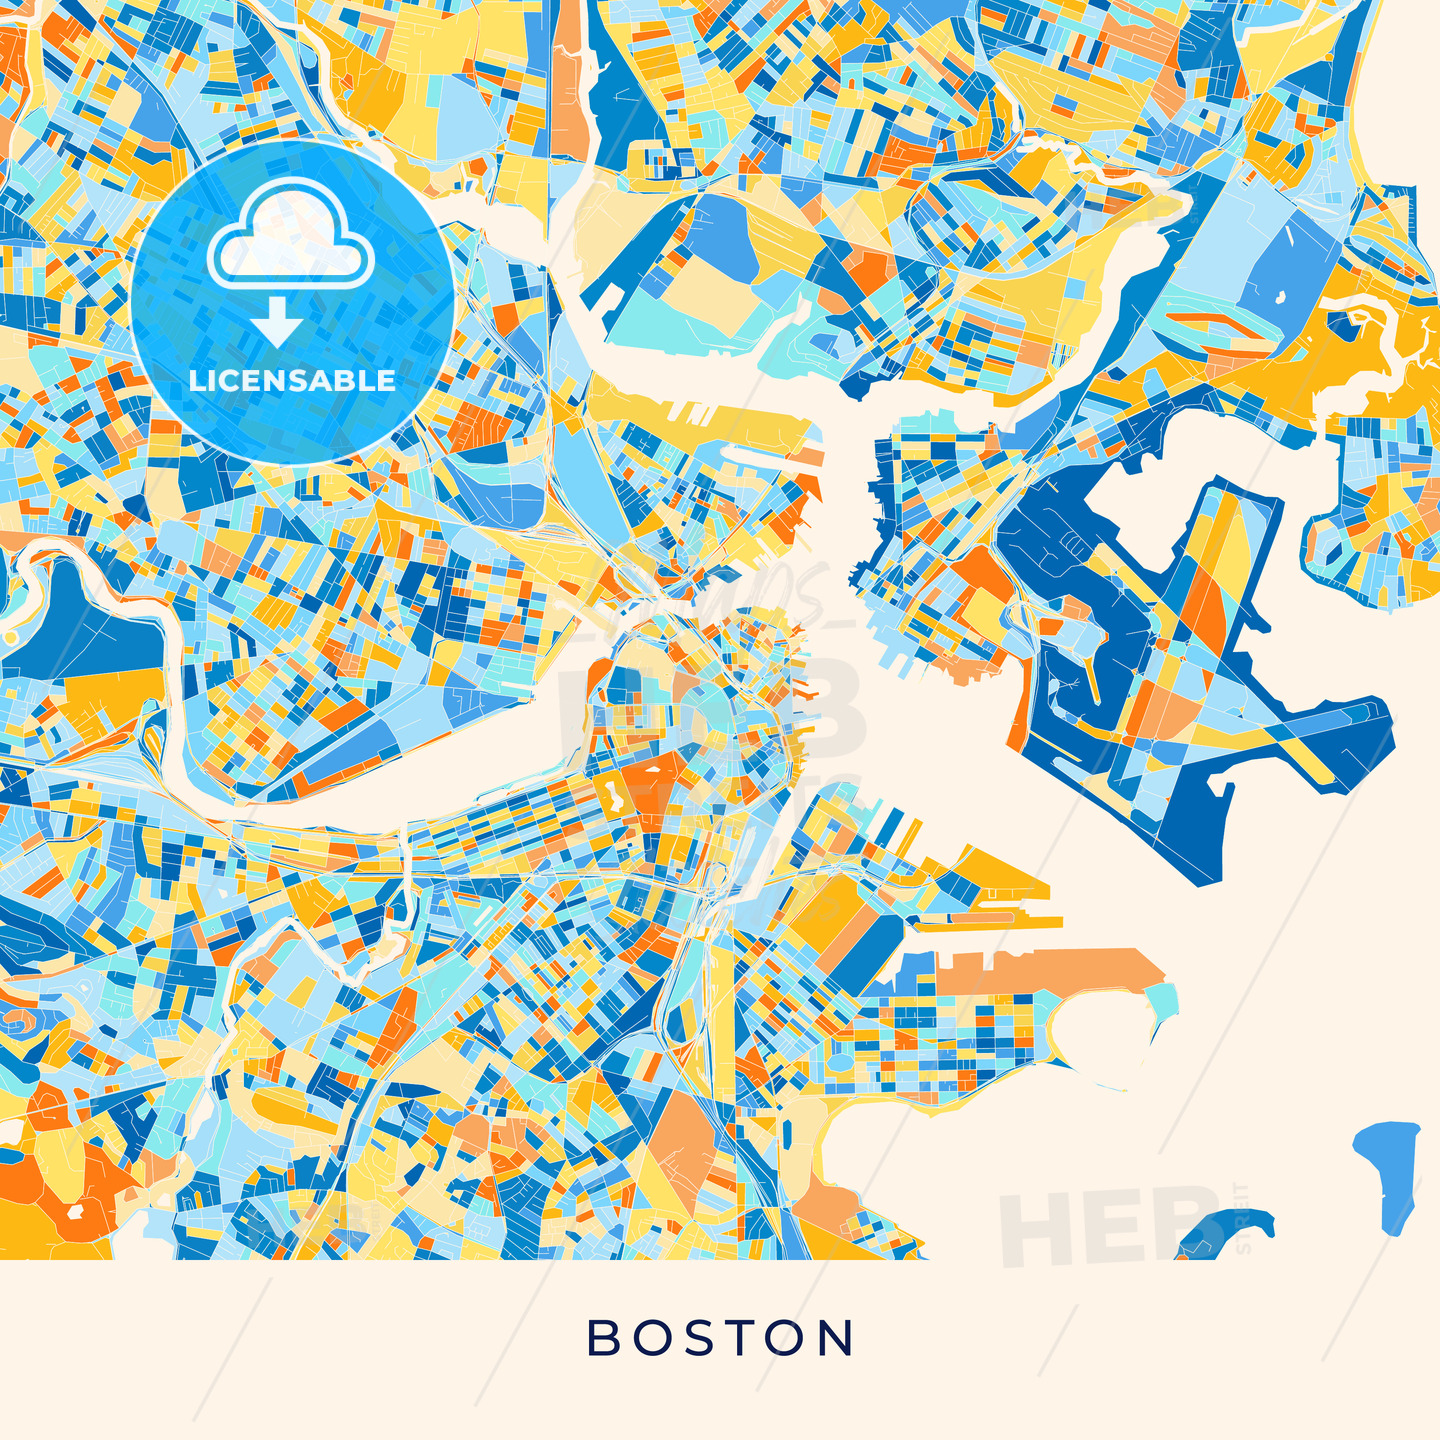 Boston colorful map poster template on pennsylvania map, cambridge map, fenway park map, usa map, america map, new england map, philly map, massachusetts map, freedom trail map, texas map, ny map, mass map, united states map, charles town map, phoenix map, ma map, u.s. state map, mississippi map, michigan map, lexington map,